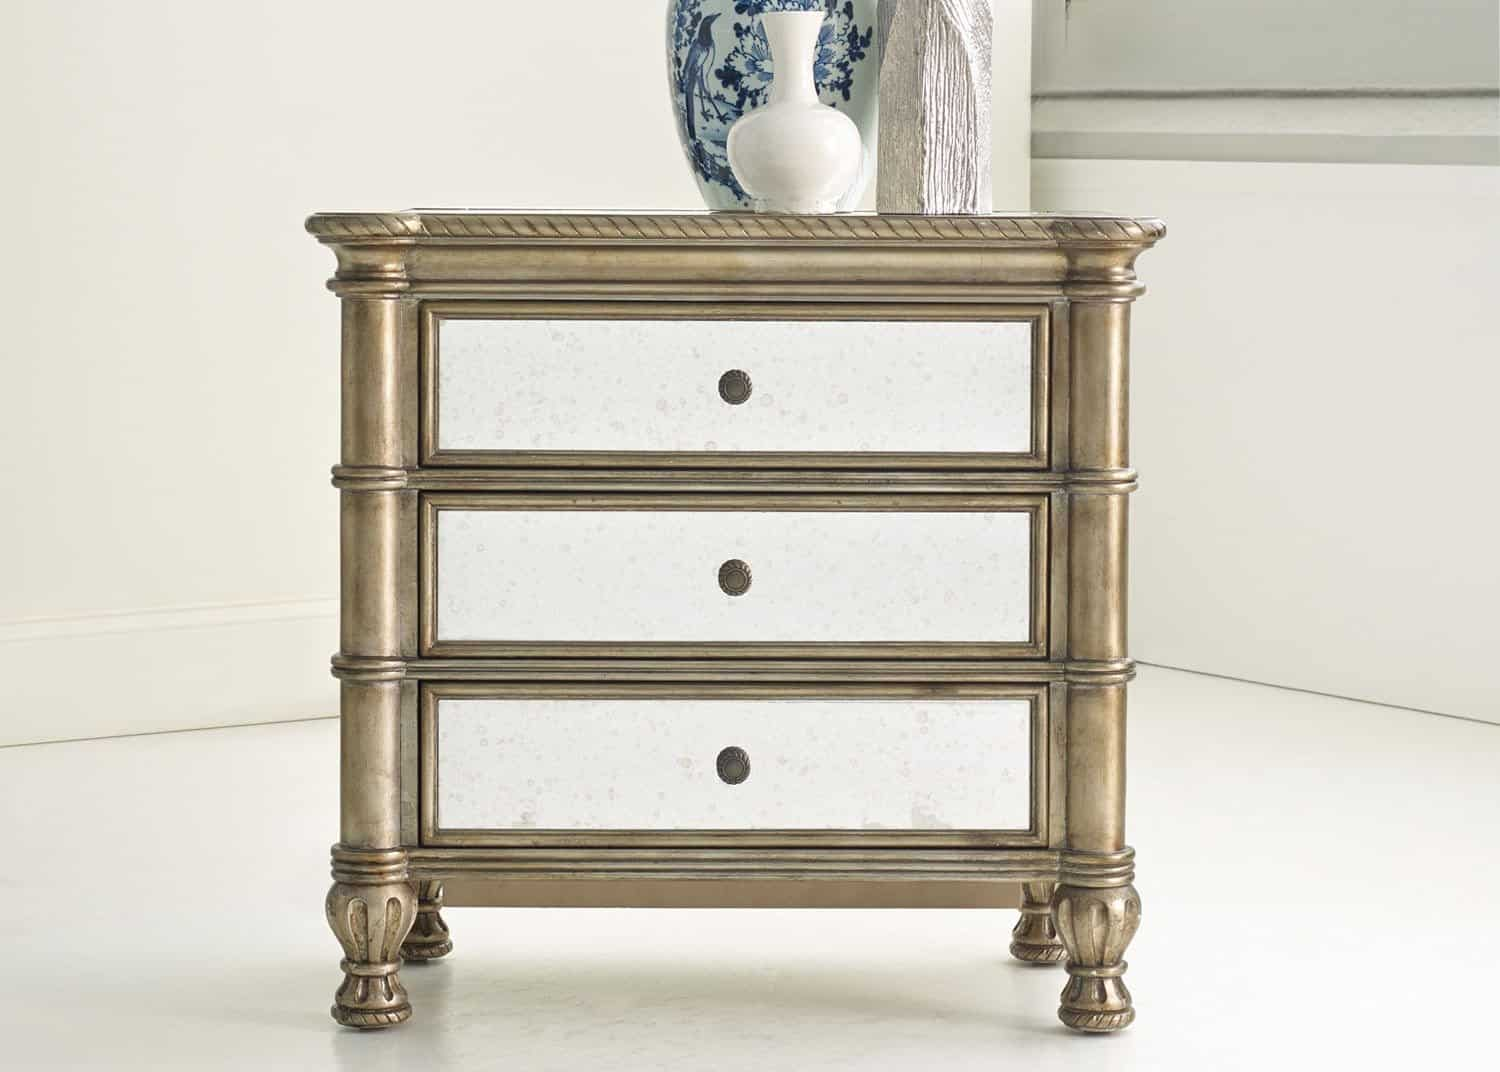 Sutherland Mirrored Nightstand Mobilart Decor High End Furniture Store In Montreal